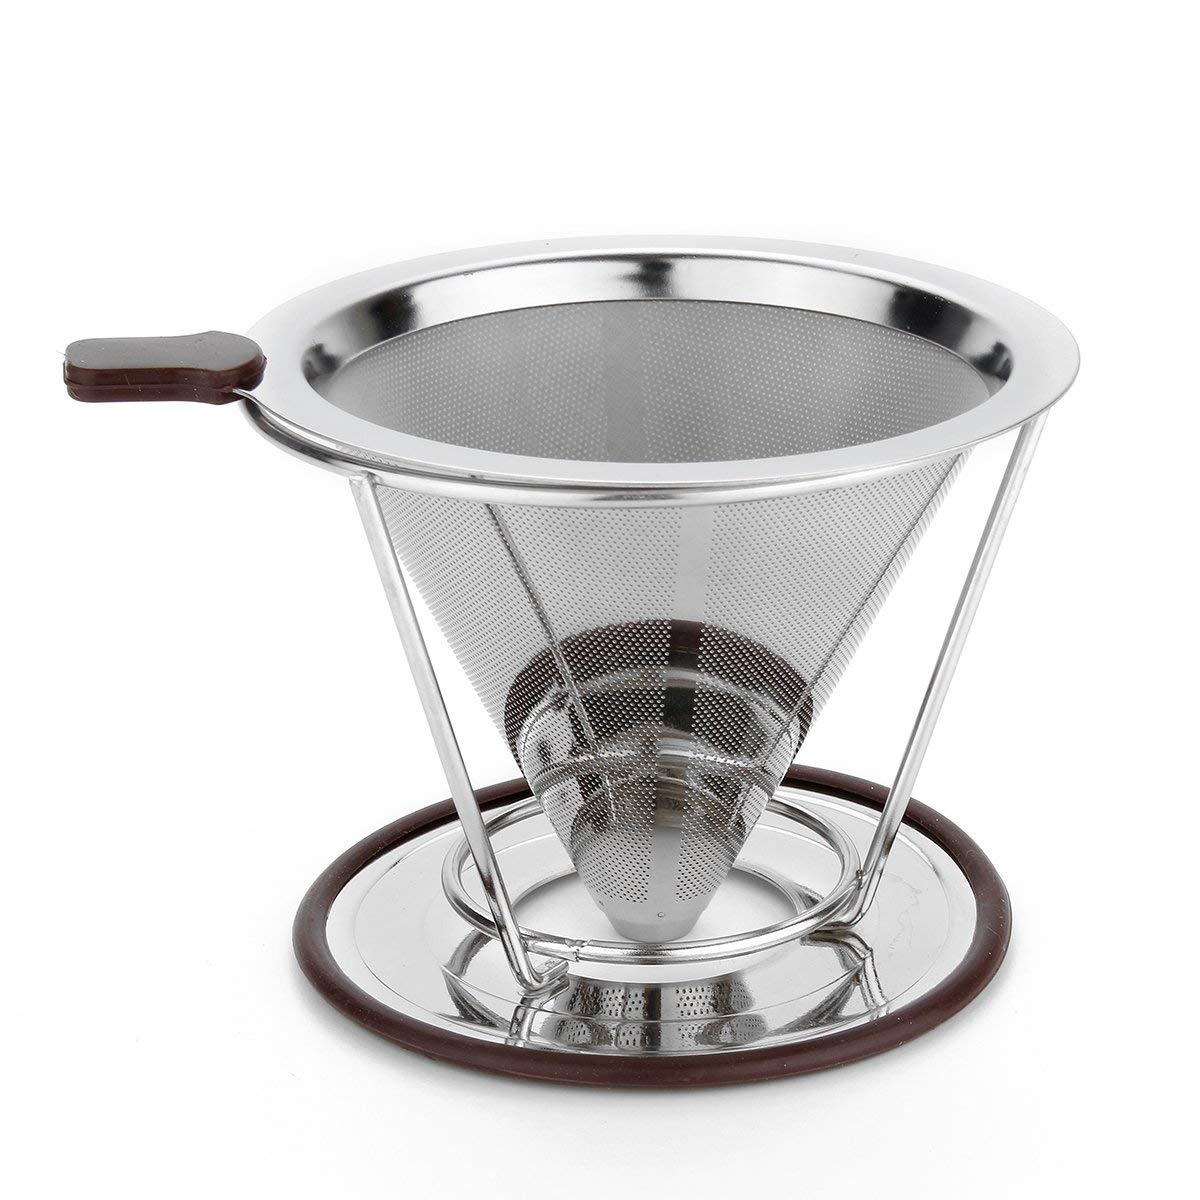 UL 115mm Stainless Steel Coffee Filter with Cup Stand